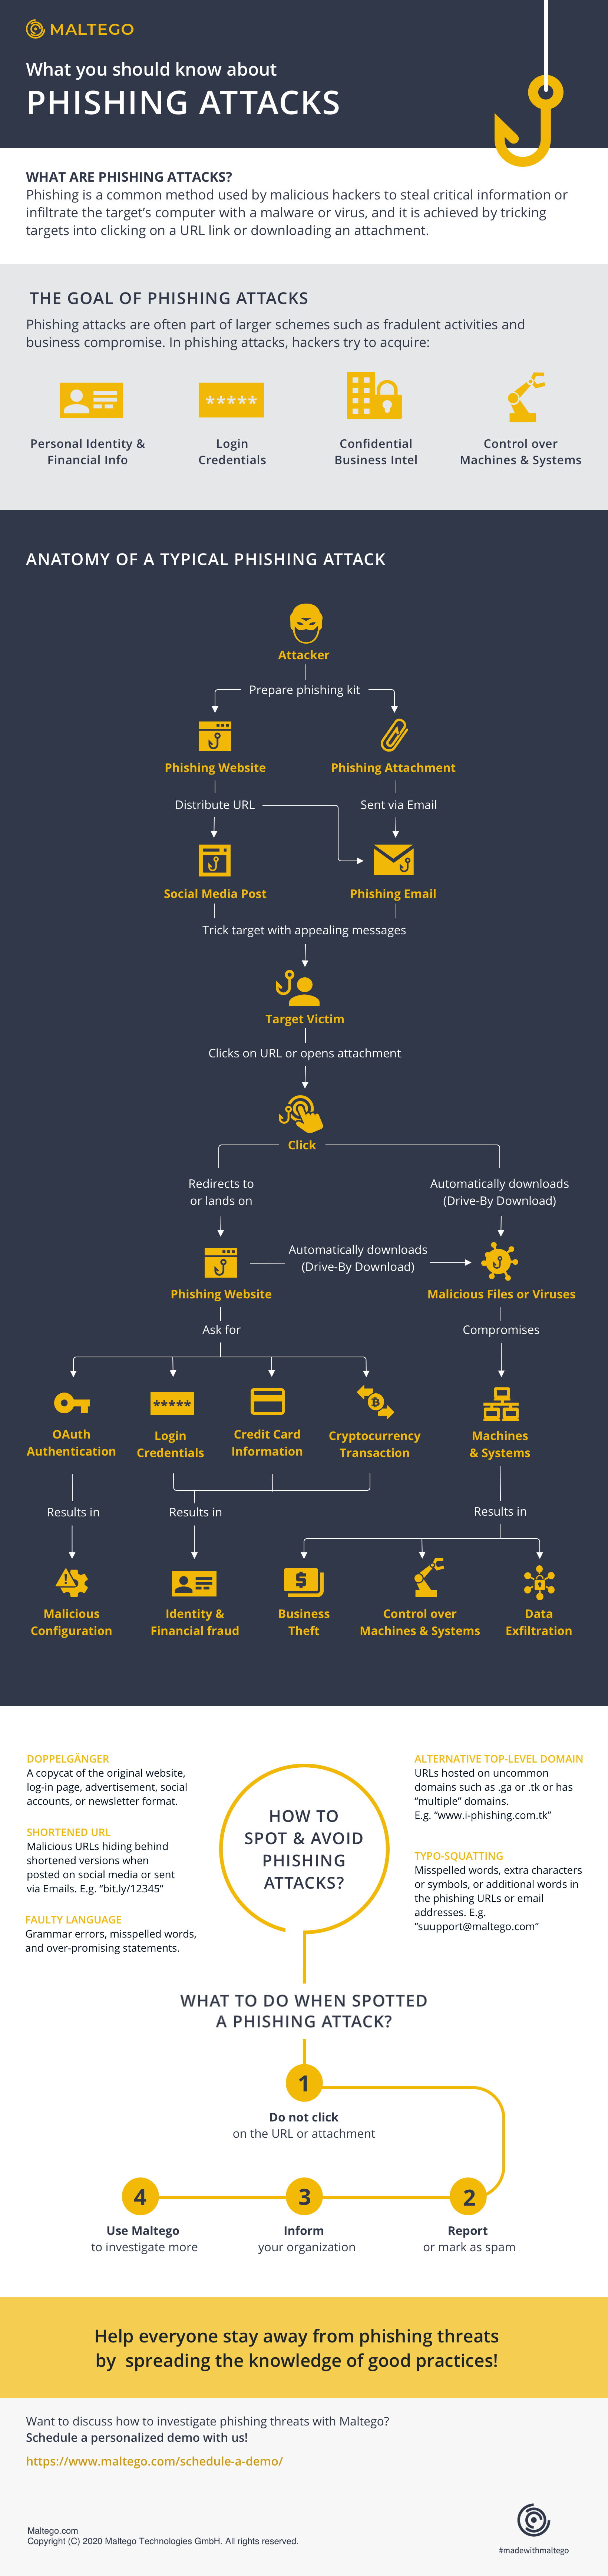 Maltego infographic about phishing attacks